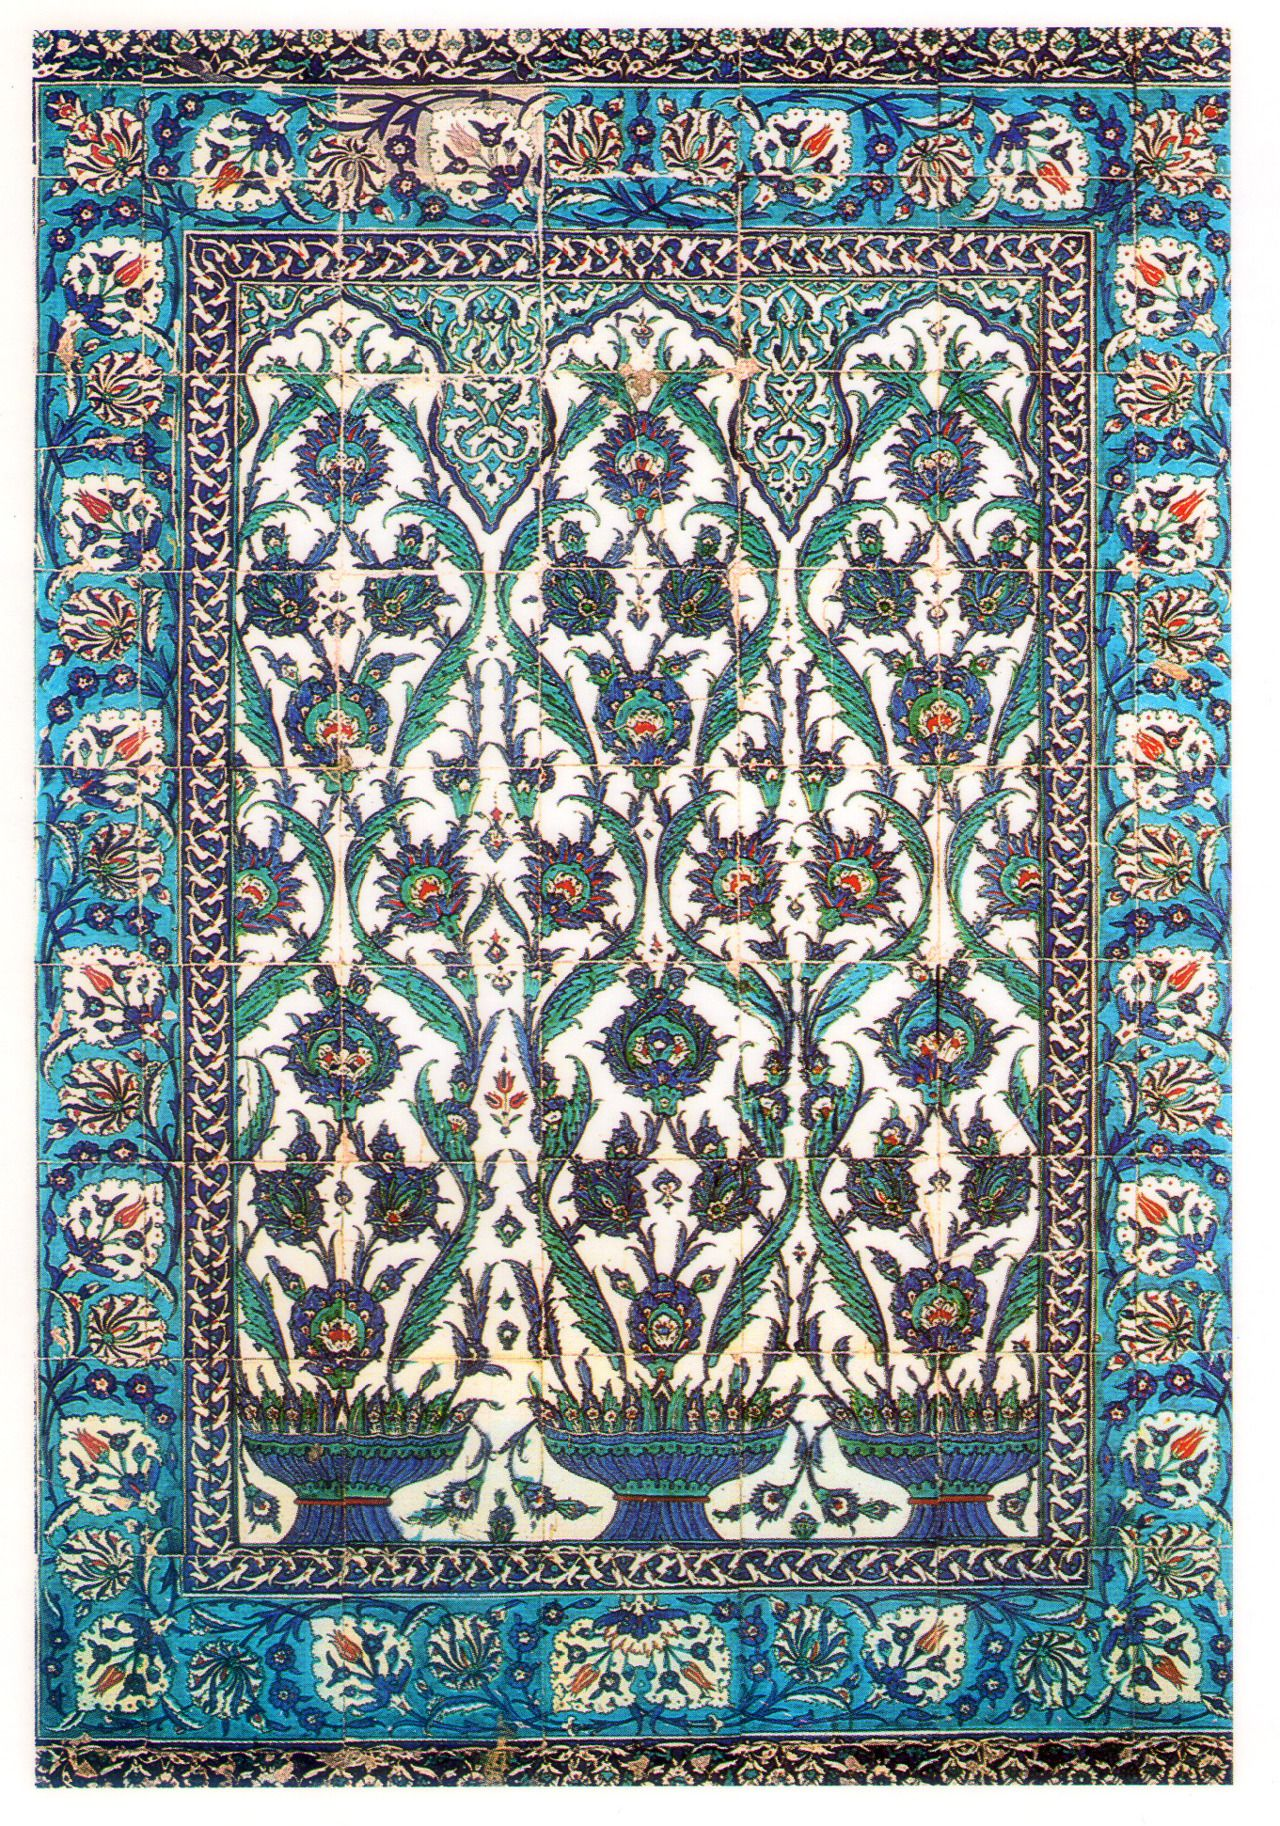 Turkish A Postcard From Romania Apparently Looks Like Tile At